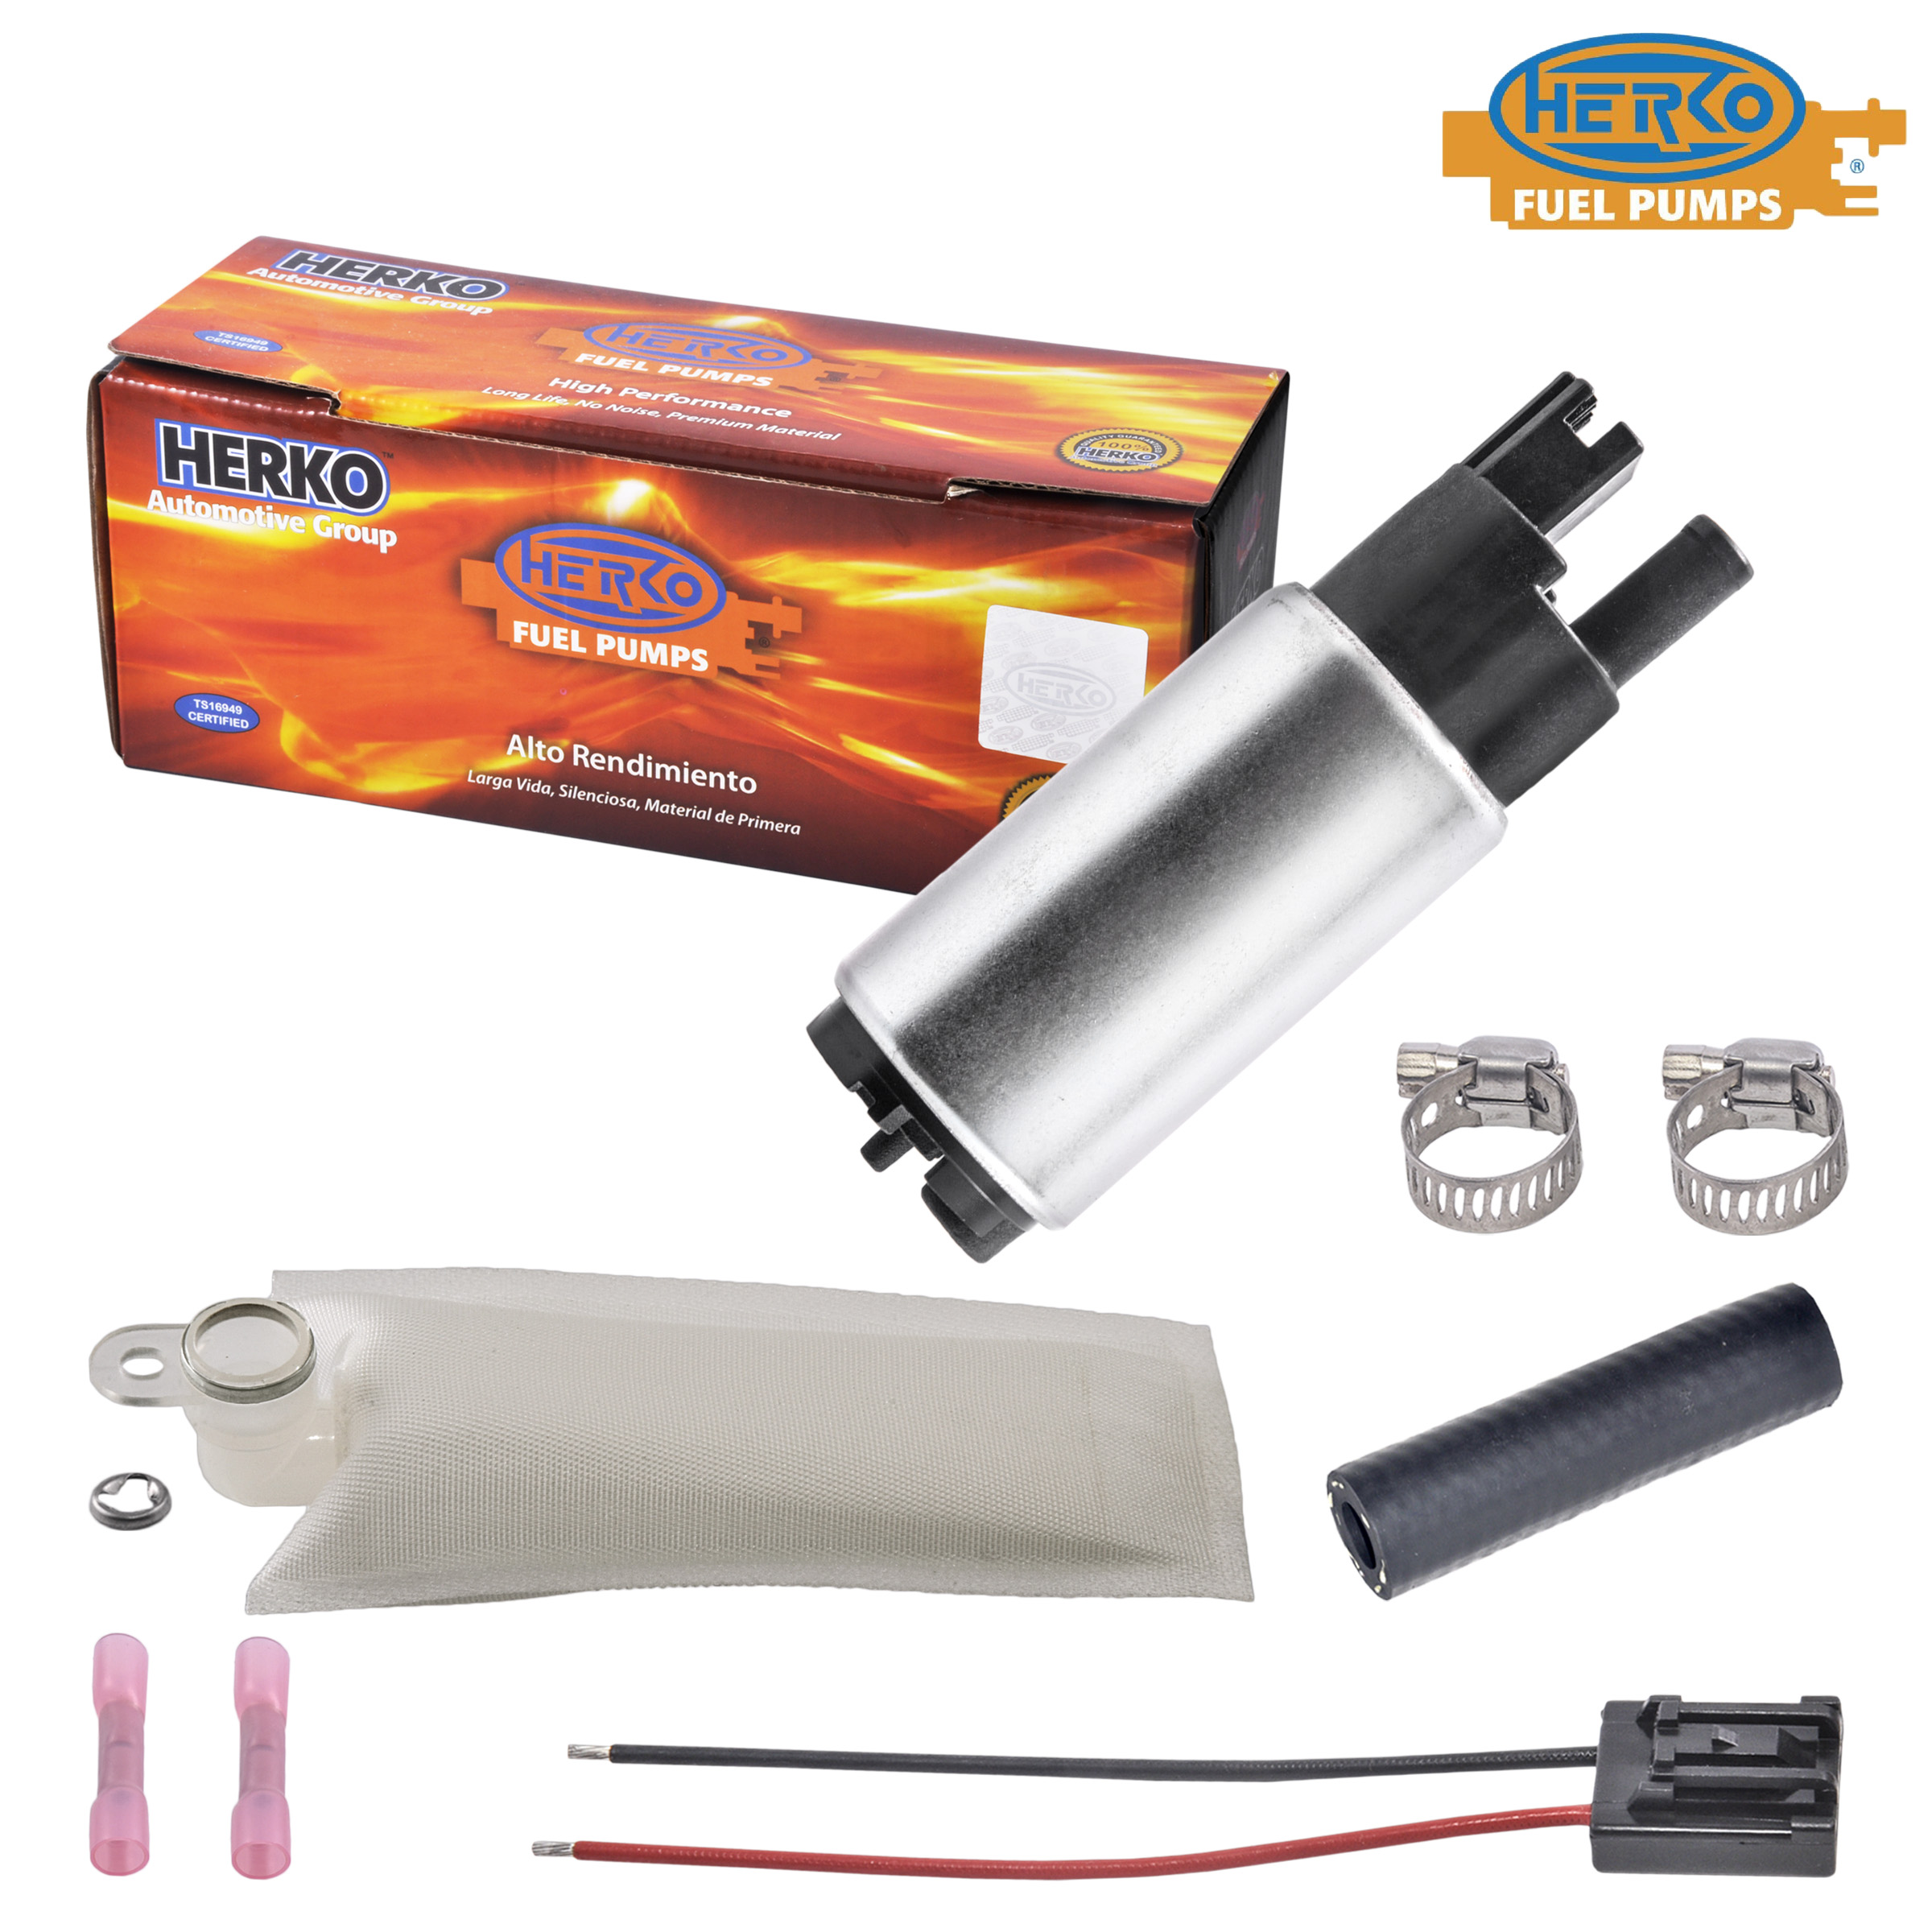 New Herko Fuel Pump Repair Kit K4000 For Ford Vehicles 1986-1991